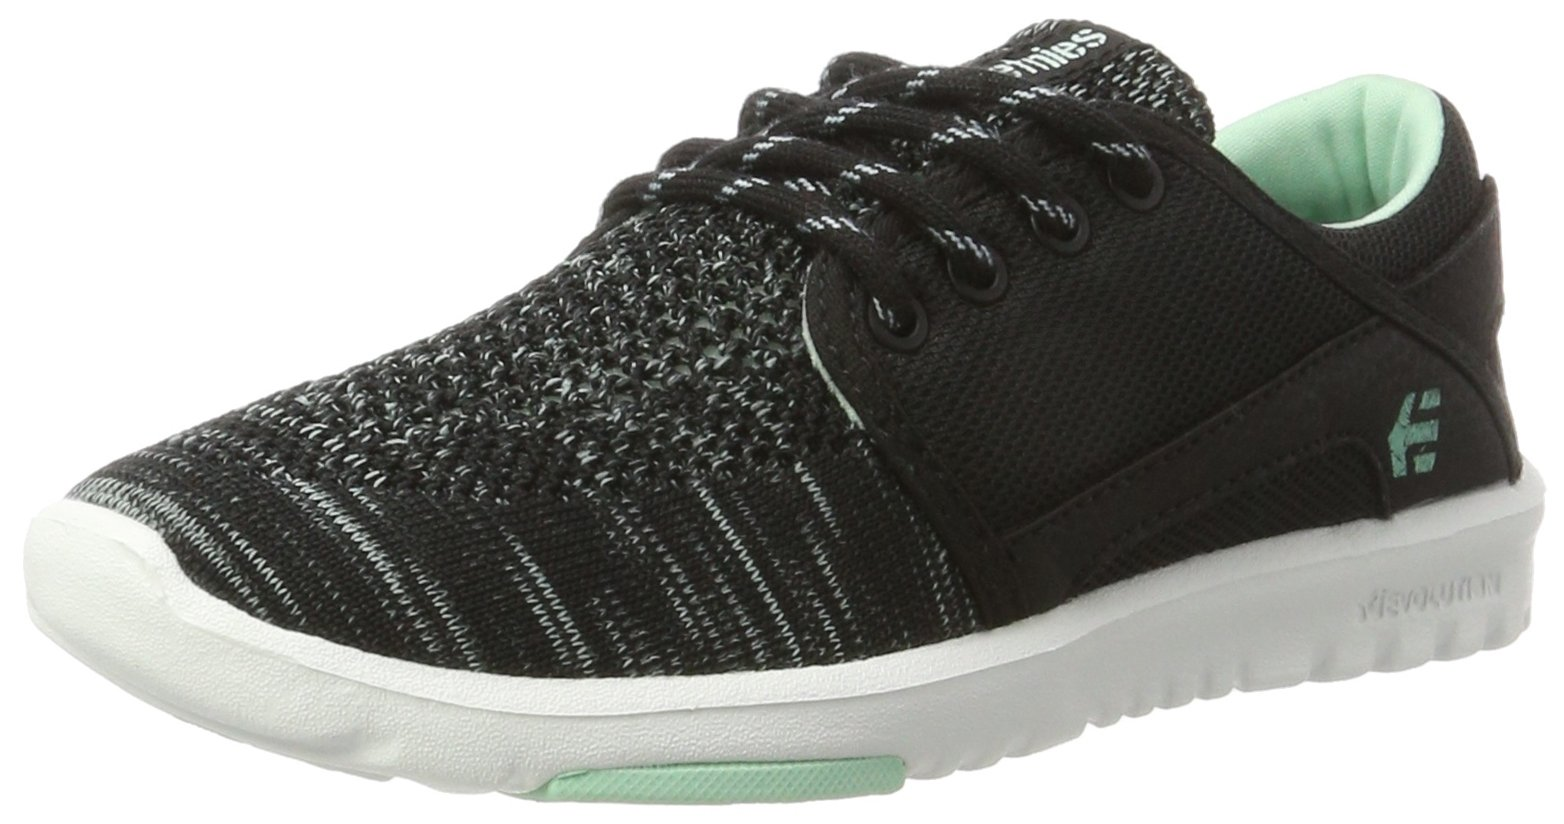 Etnies Women's Scout Yb W's Skateboarding Shoe, Black/Blue, 8.5 M US